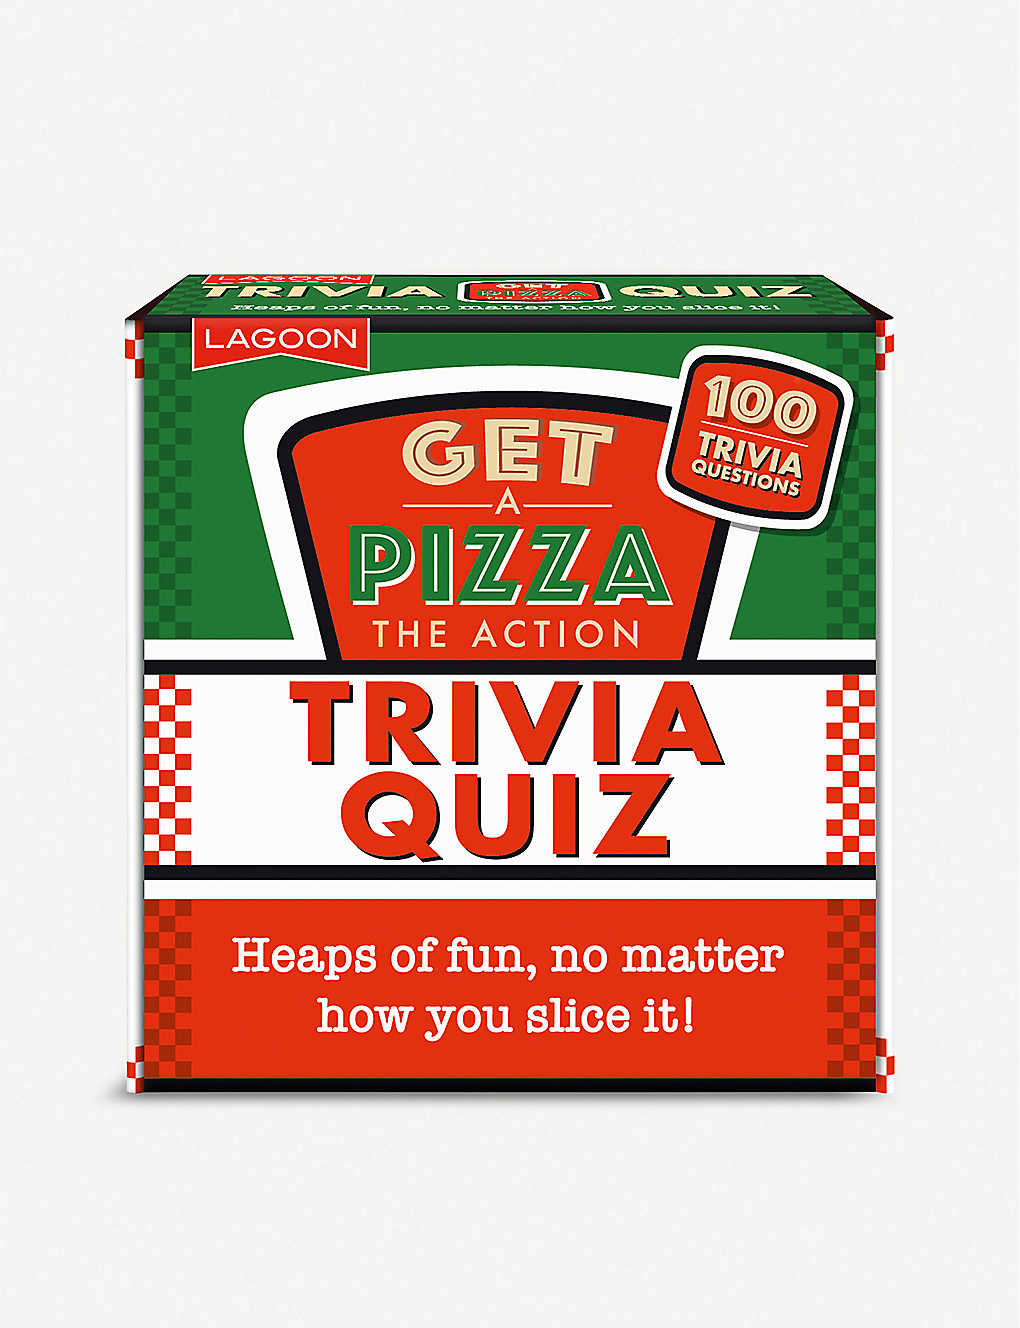 LAGOON: Get a Pizza the Action Trivia Quiz